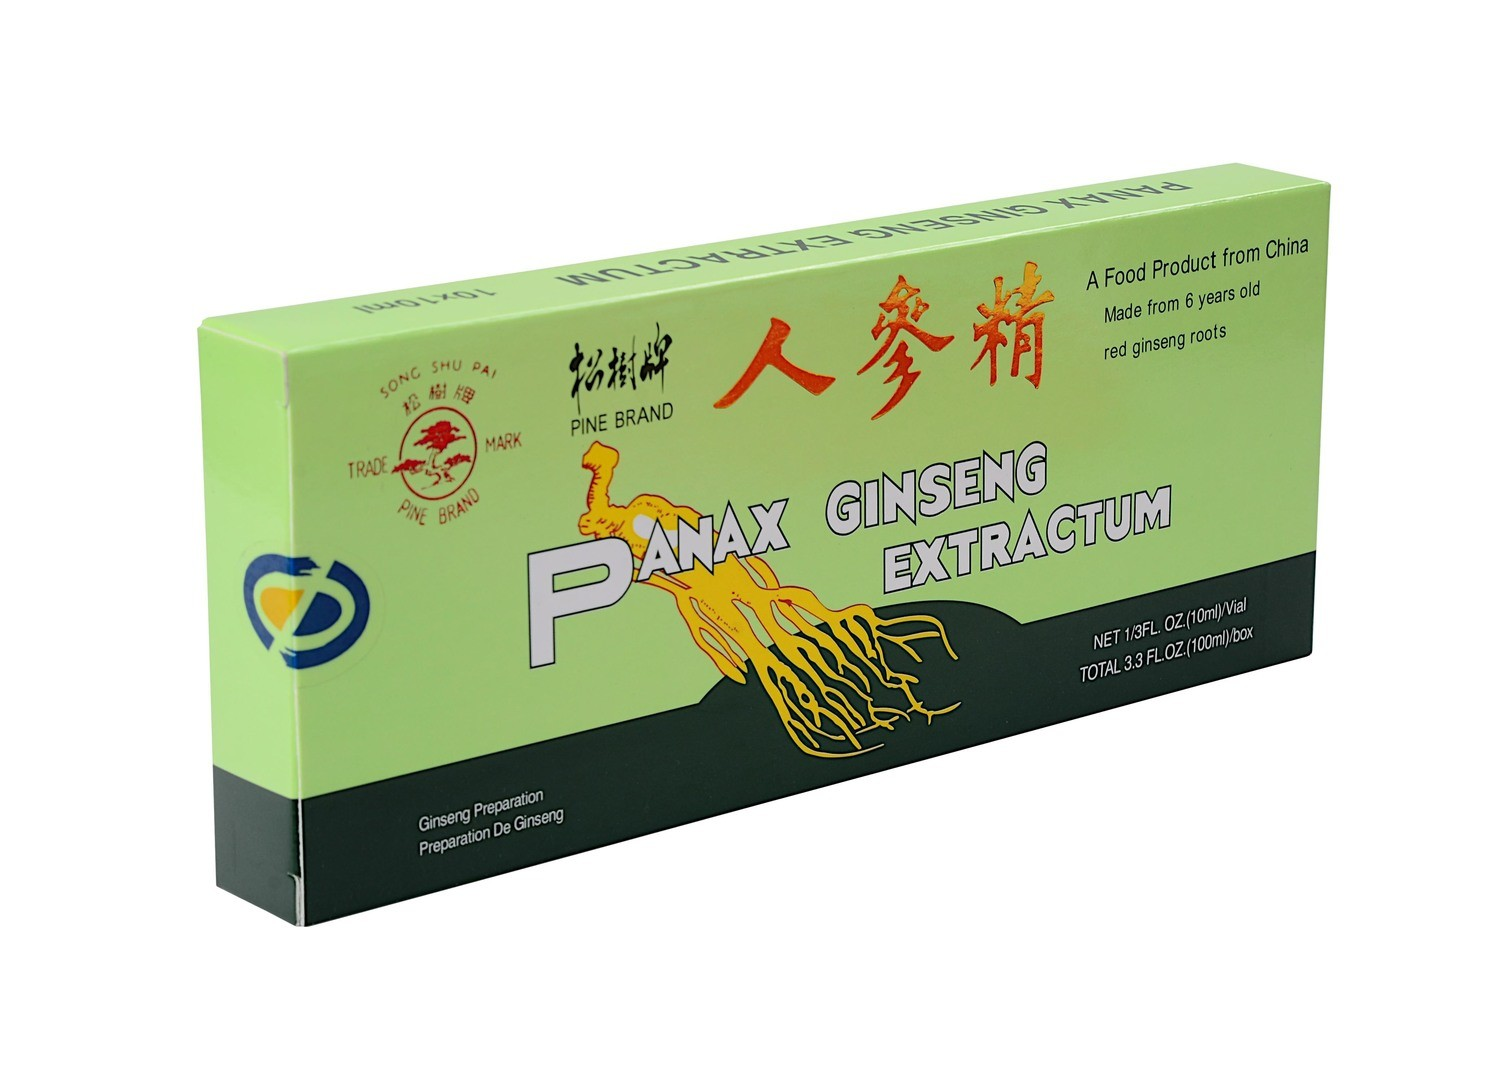 Panax Ginseng Extract Oral Liquid (6 years old red ginseng) 10 vials